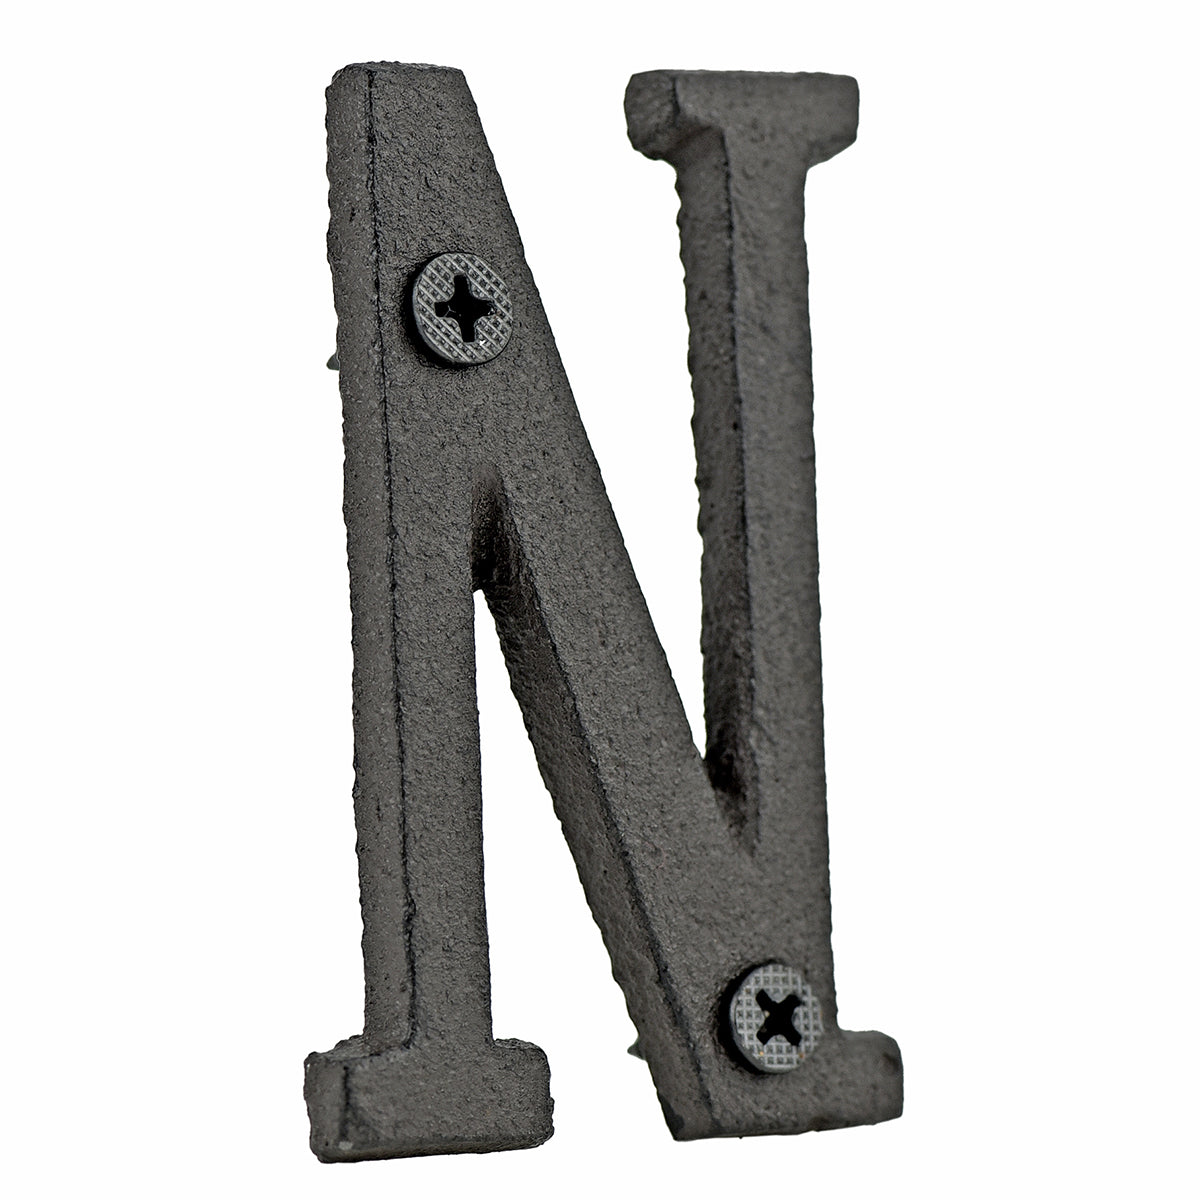 A cast iron house letter sign 'N' with white background